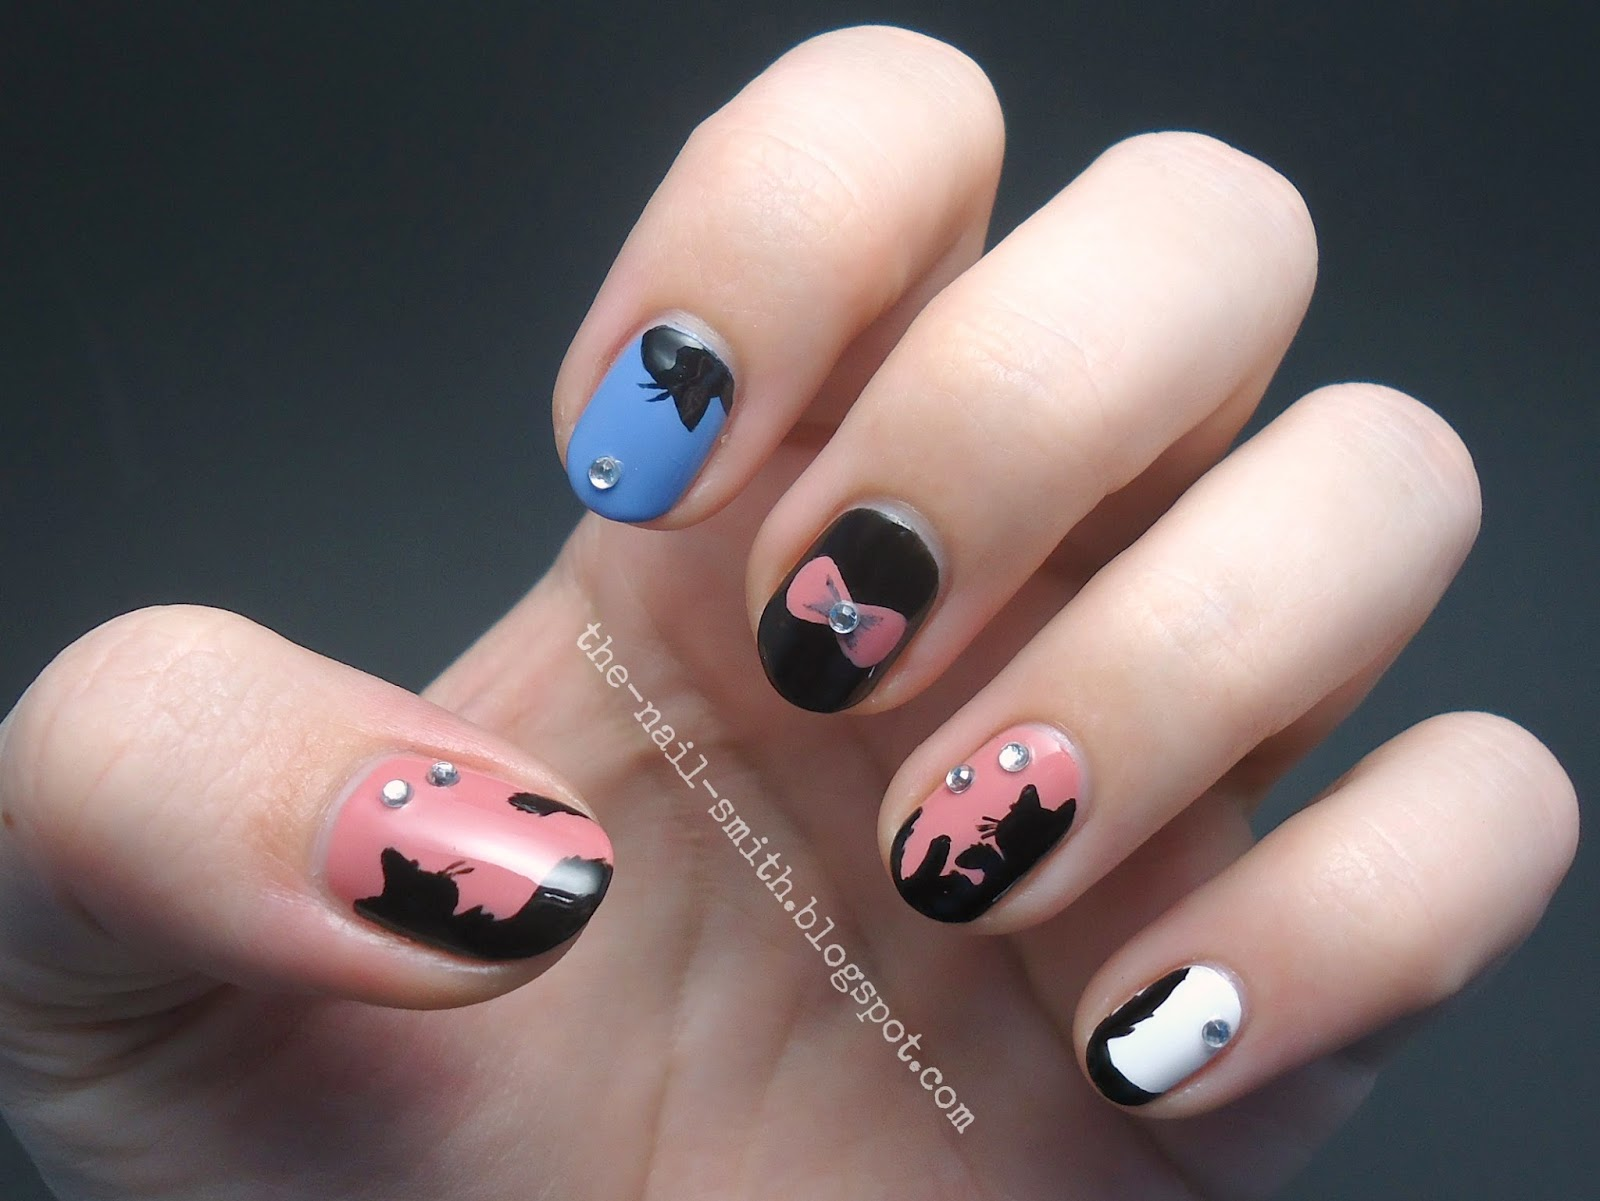 The Nail Smith: Les Nail Smiths, March 2015: Pinterest Inspired